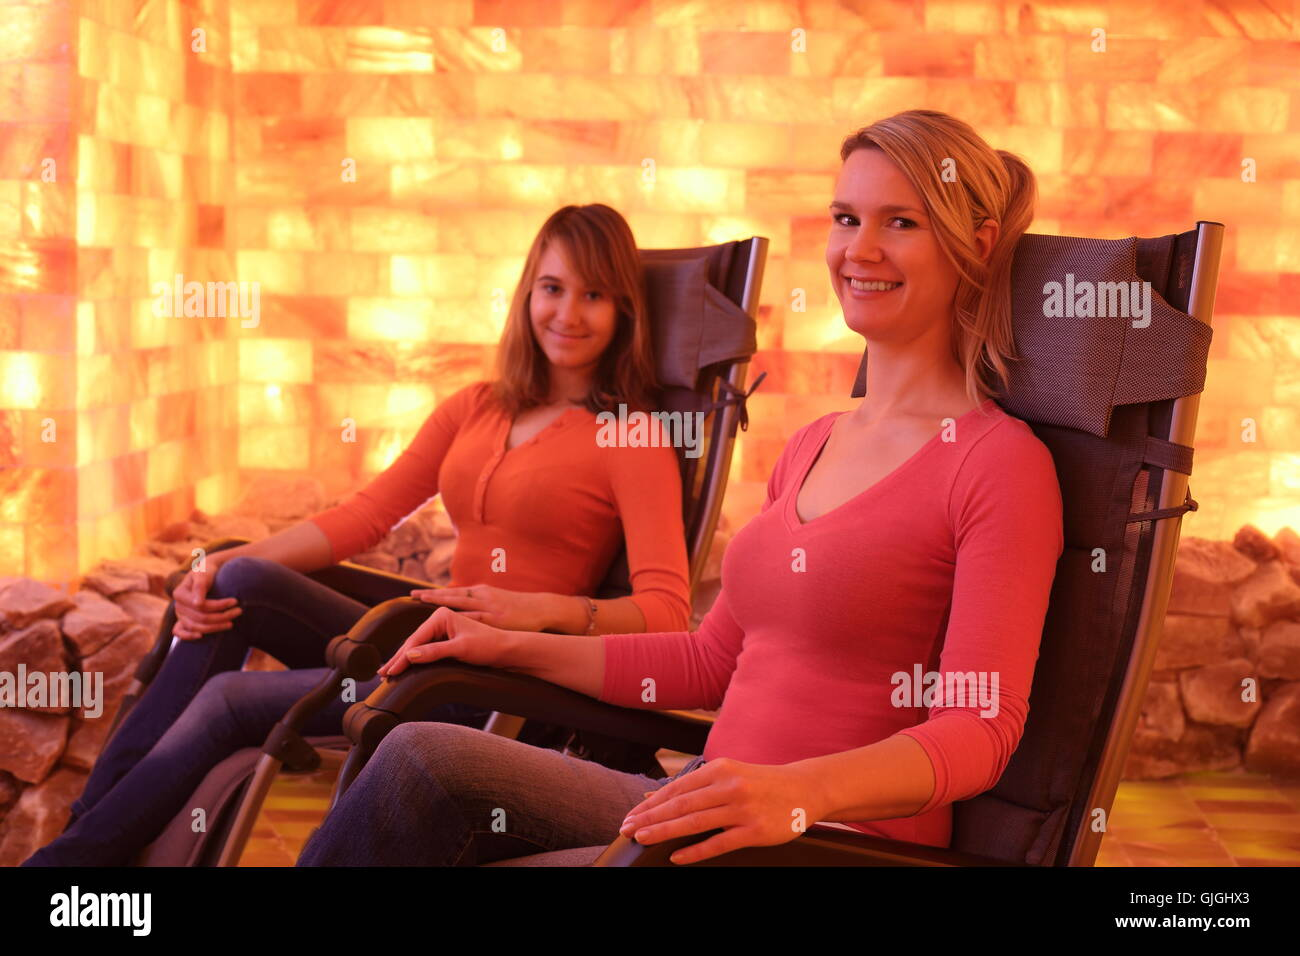 Two happy women relaxing in a holotherapy salt room - Stock Image